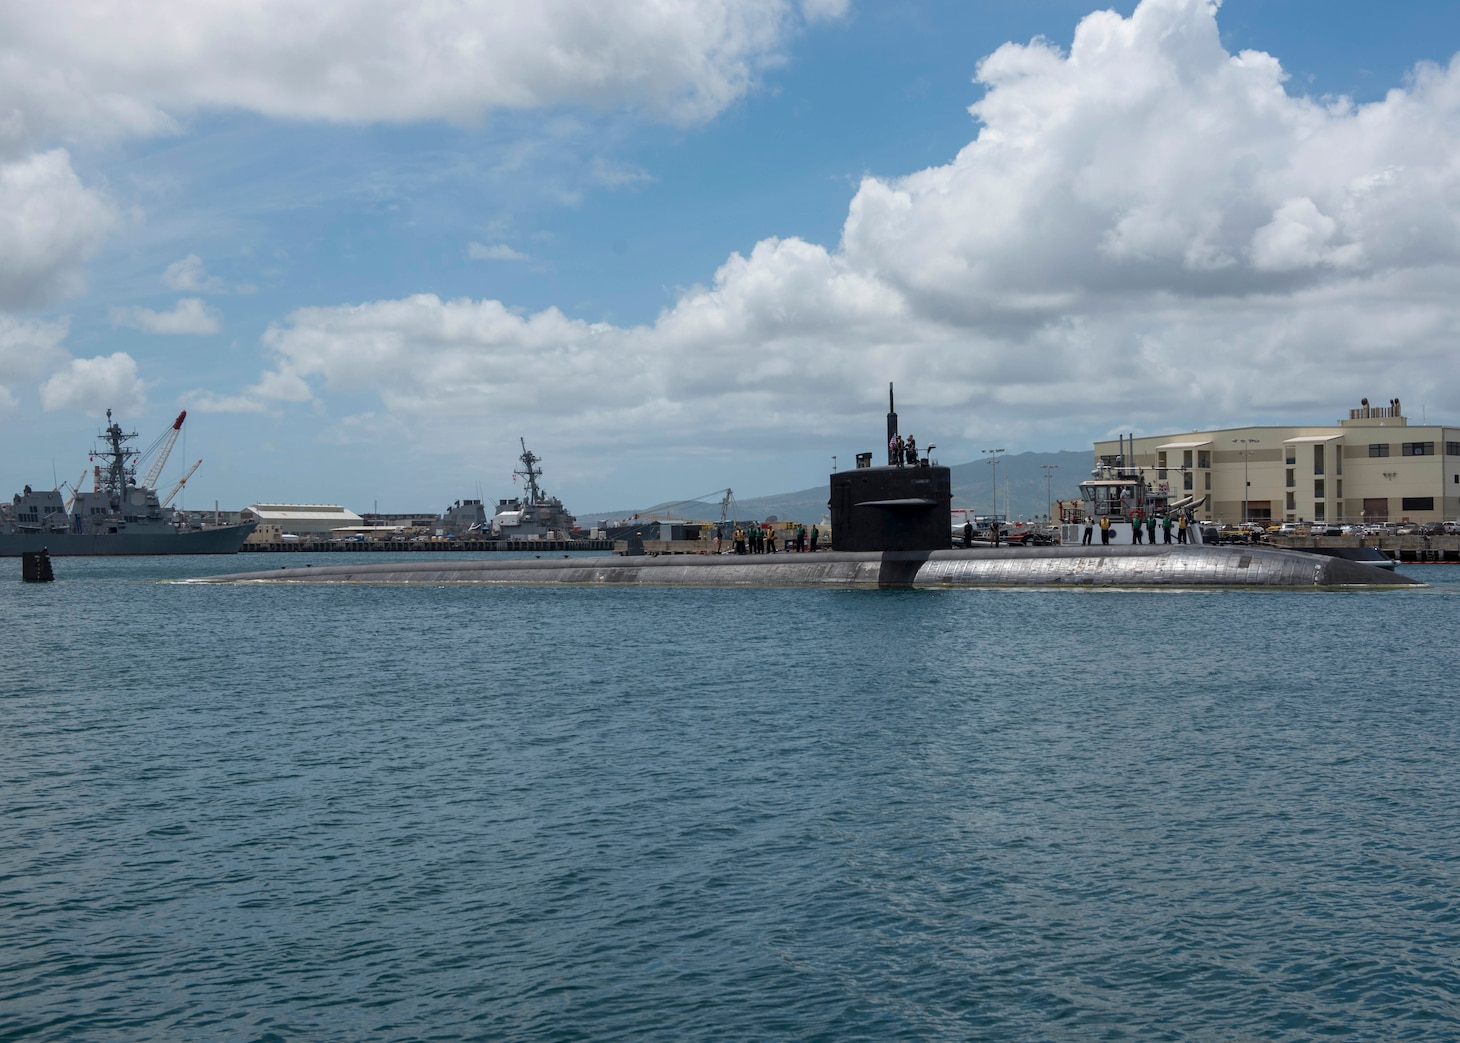 PEARL HARBOR (April 20, 2018) The Los Angeles- class fast-attack submarine USS Bremerton (SSN 698) departs Joint Base Pearl Harbor-Hickam for the final time, April 20.(U.S. Navy Photo by Mass Communication Specialist 2nd Class Shaun Griffin/Released)